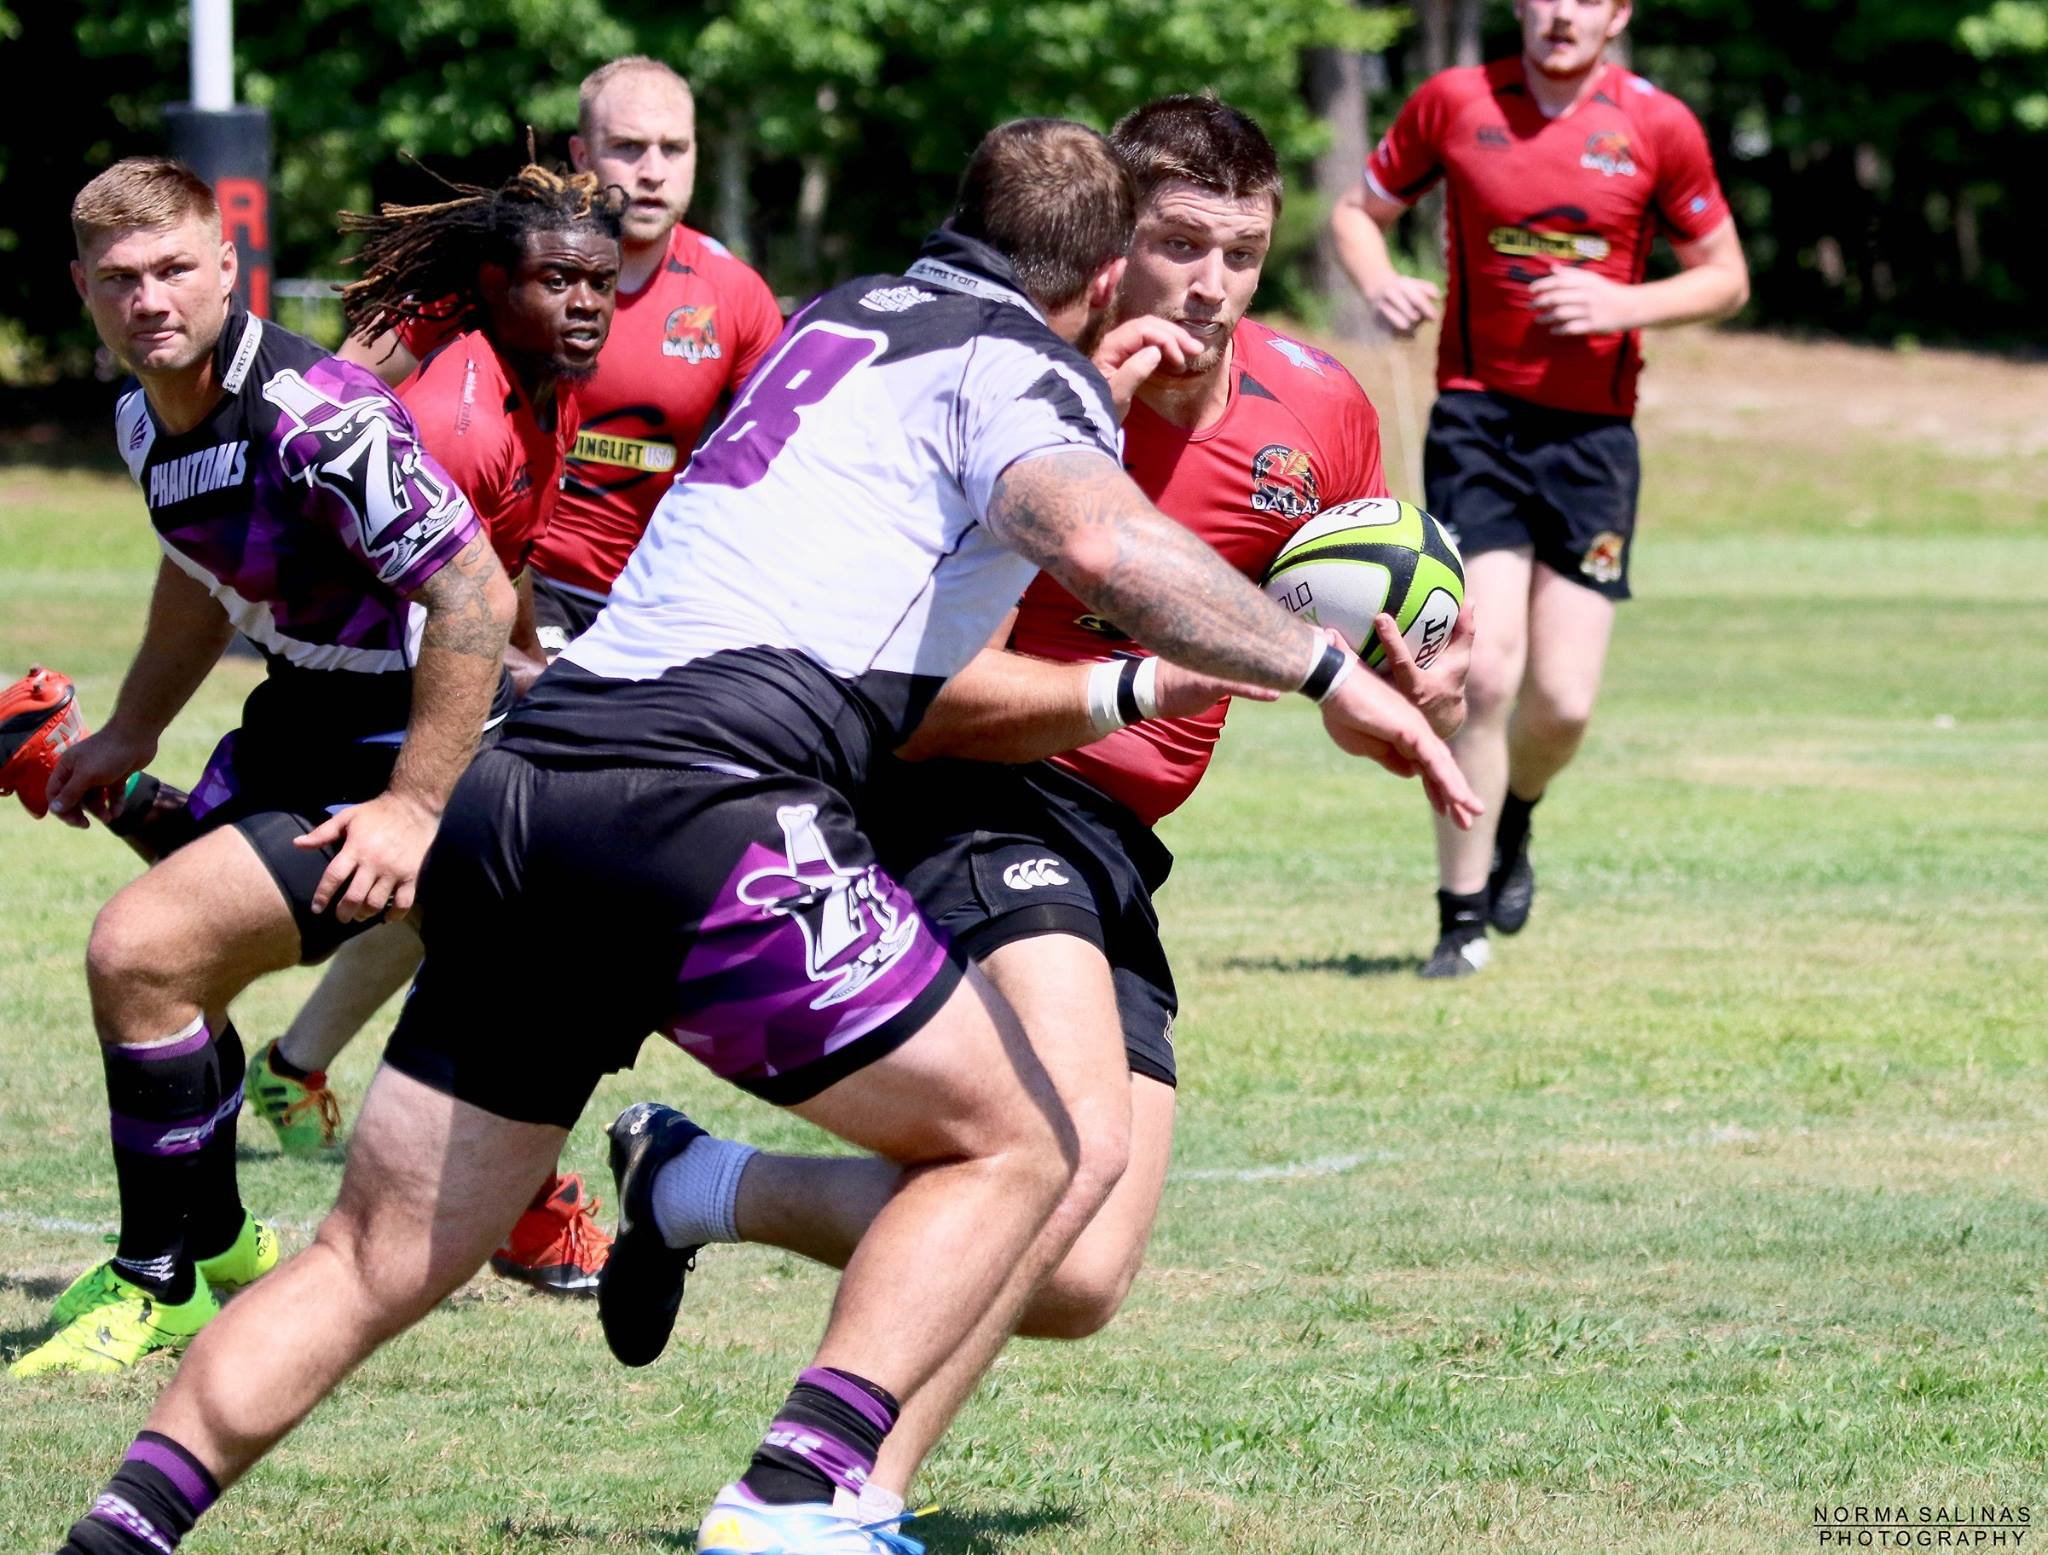 Little Rock vs Phantom 7s